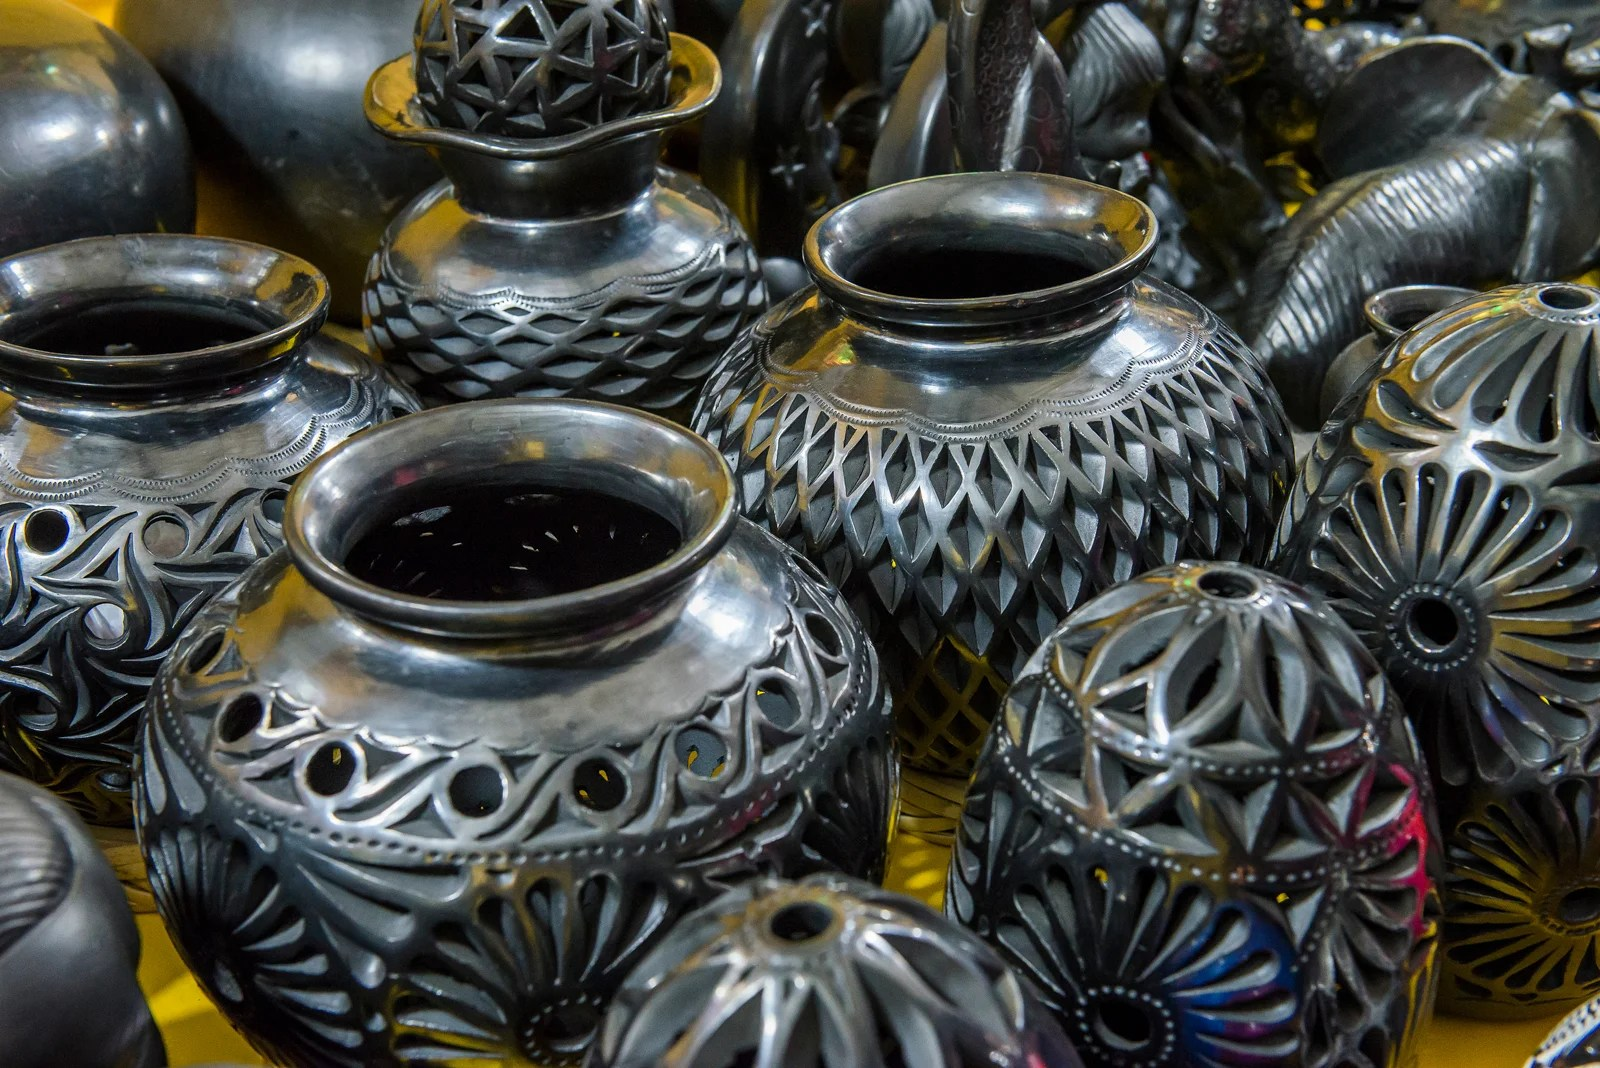 Barro Negro from Oaxacan Silver. (Photo by Vicy / Shutterstock)